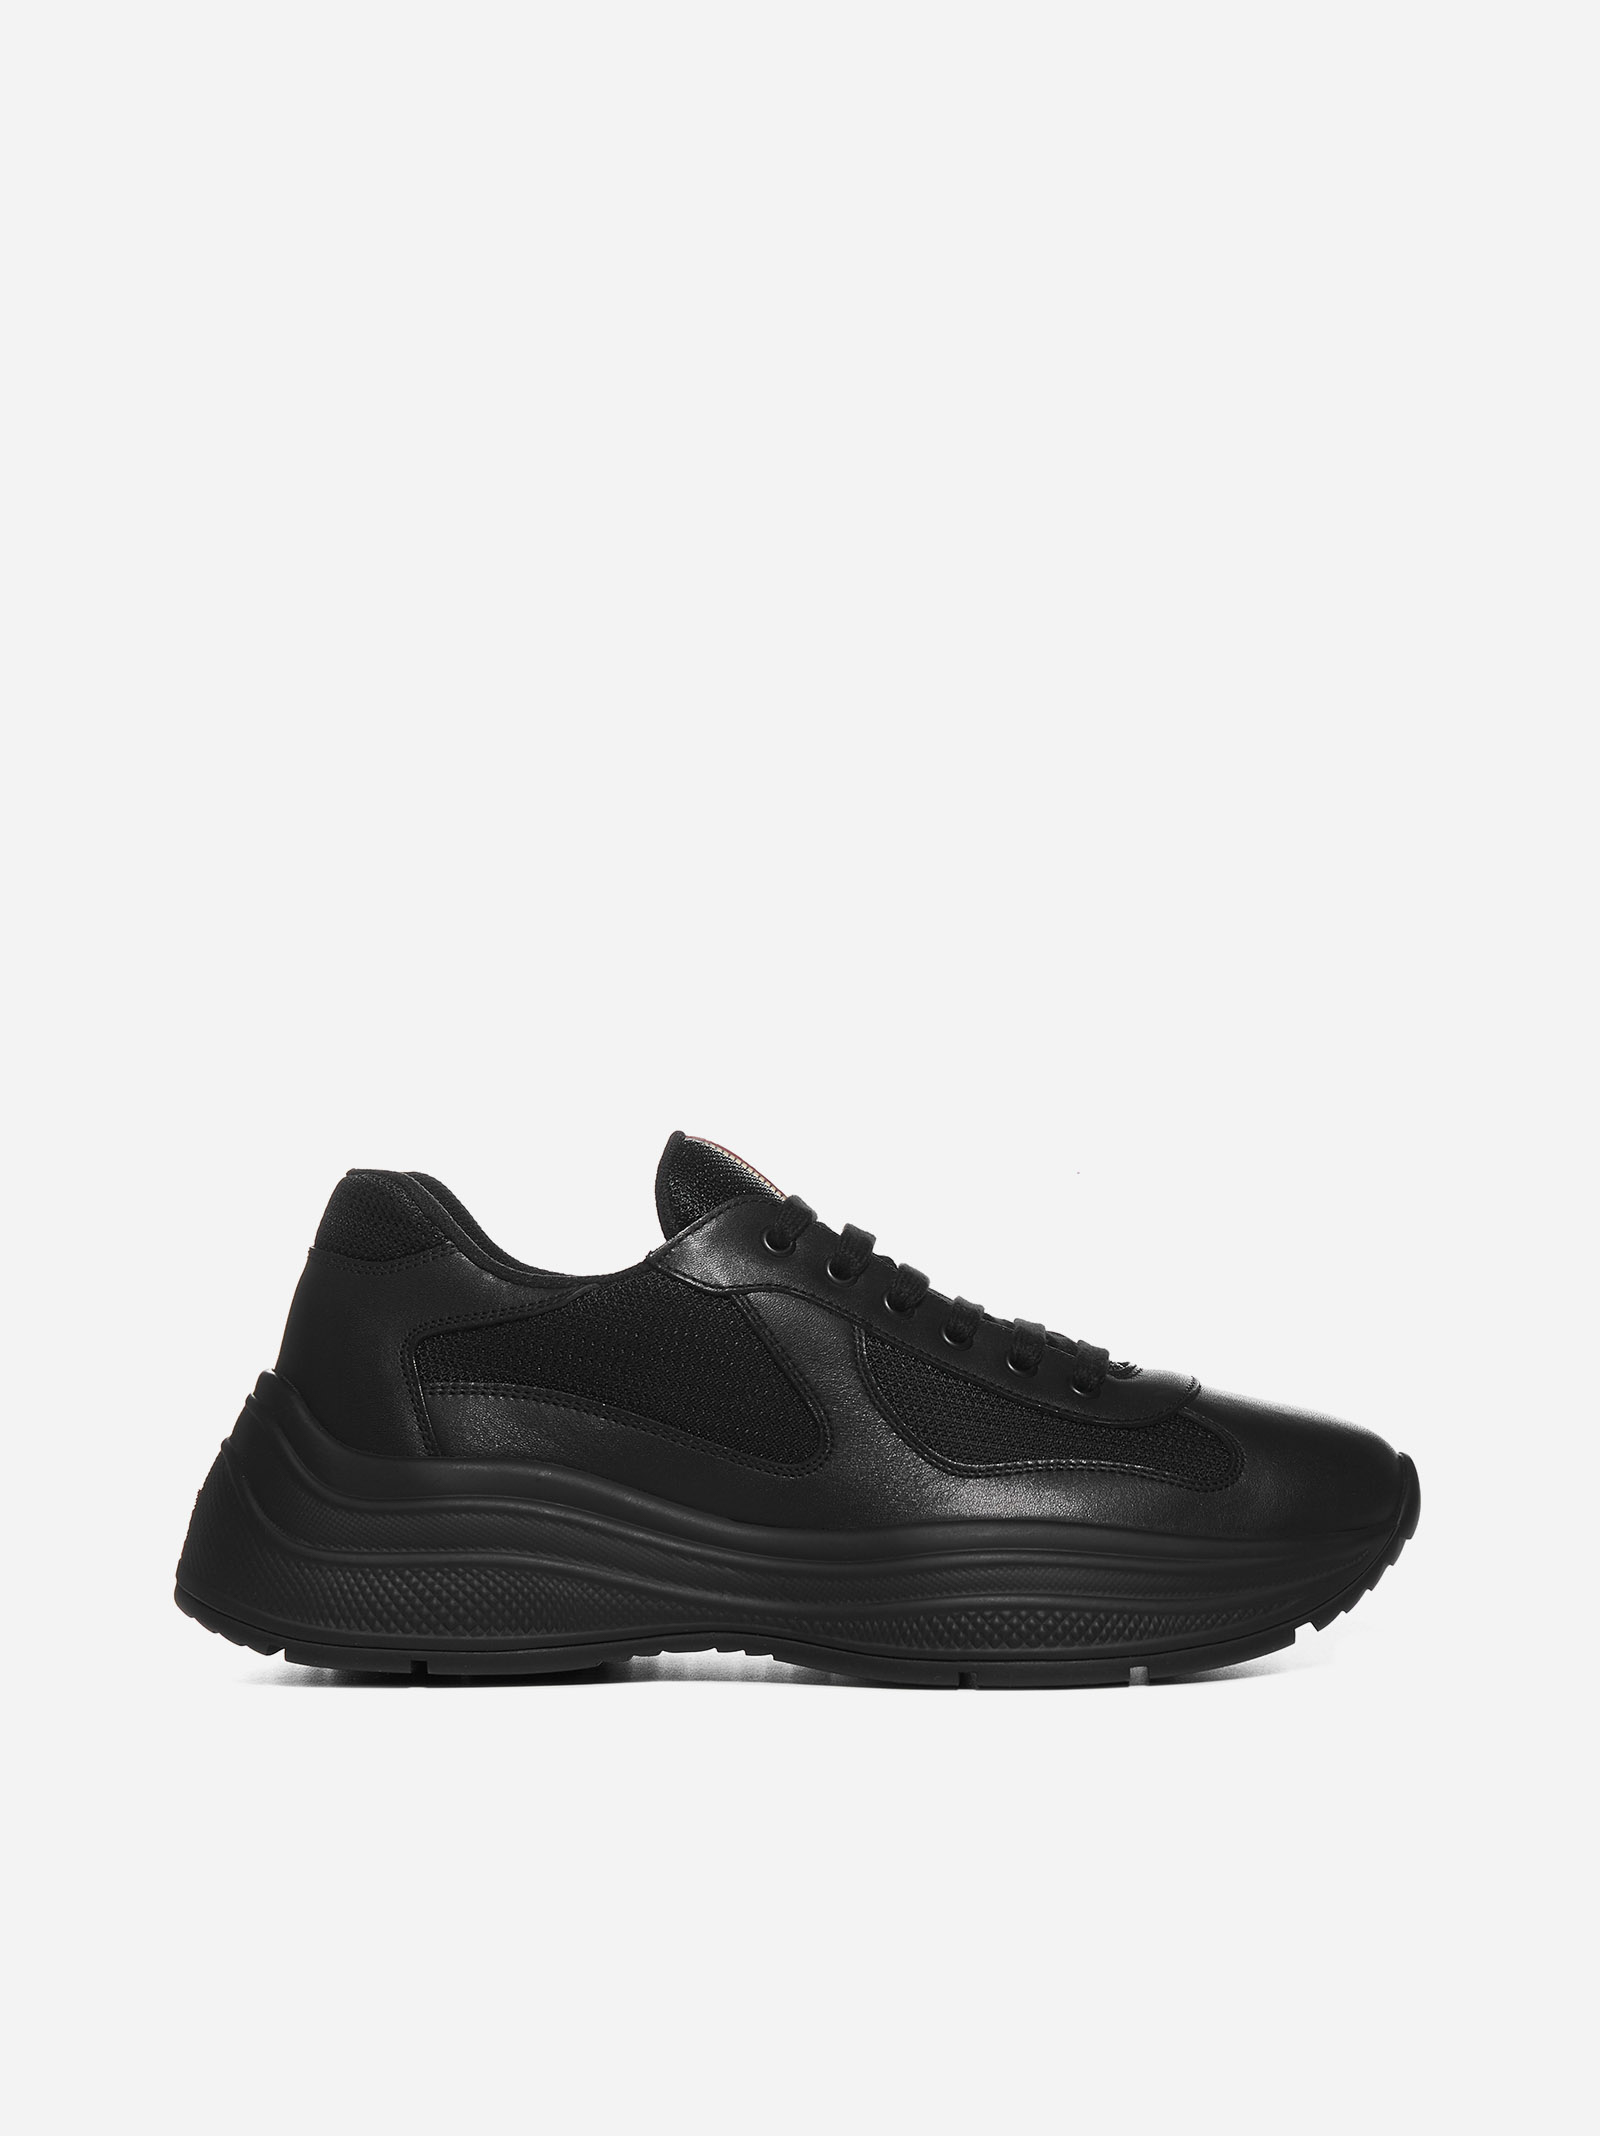 Prada Leathers SNEAKERS AMERICA'S CUP IN MESH E PELLE